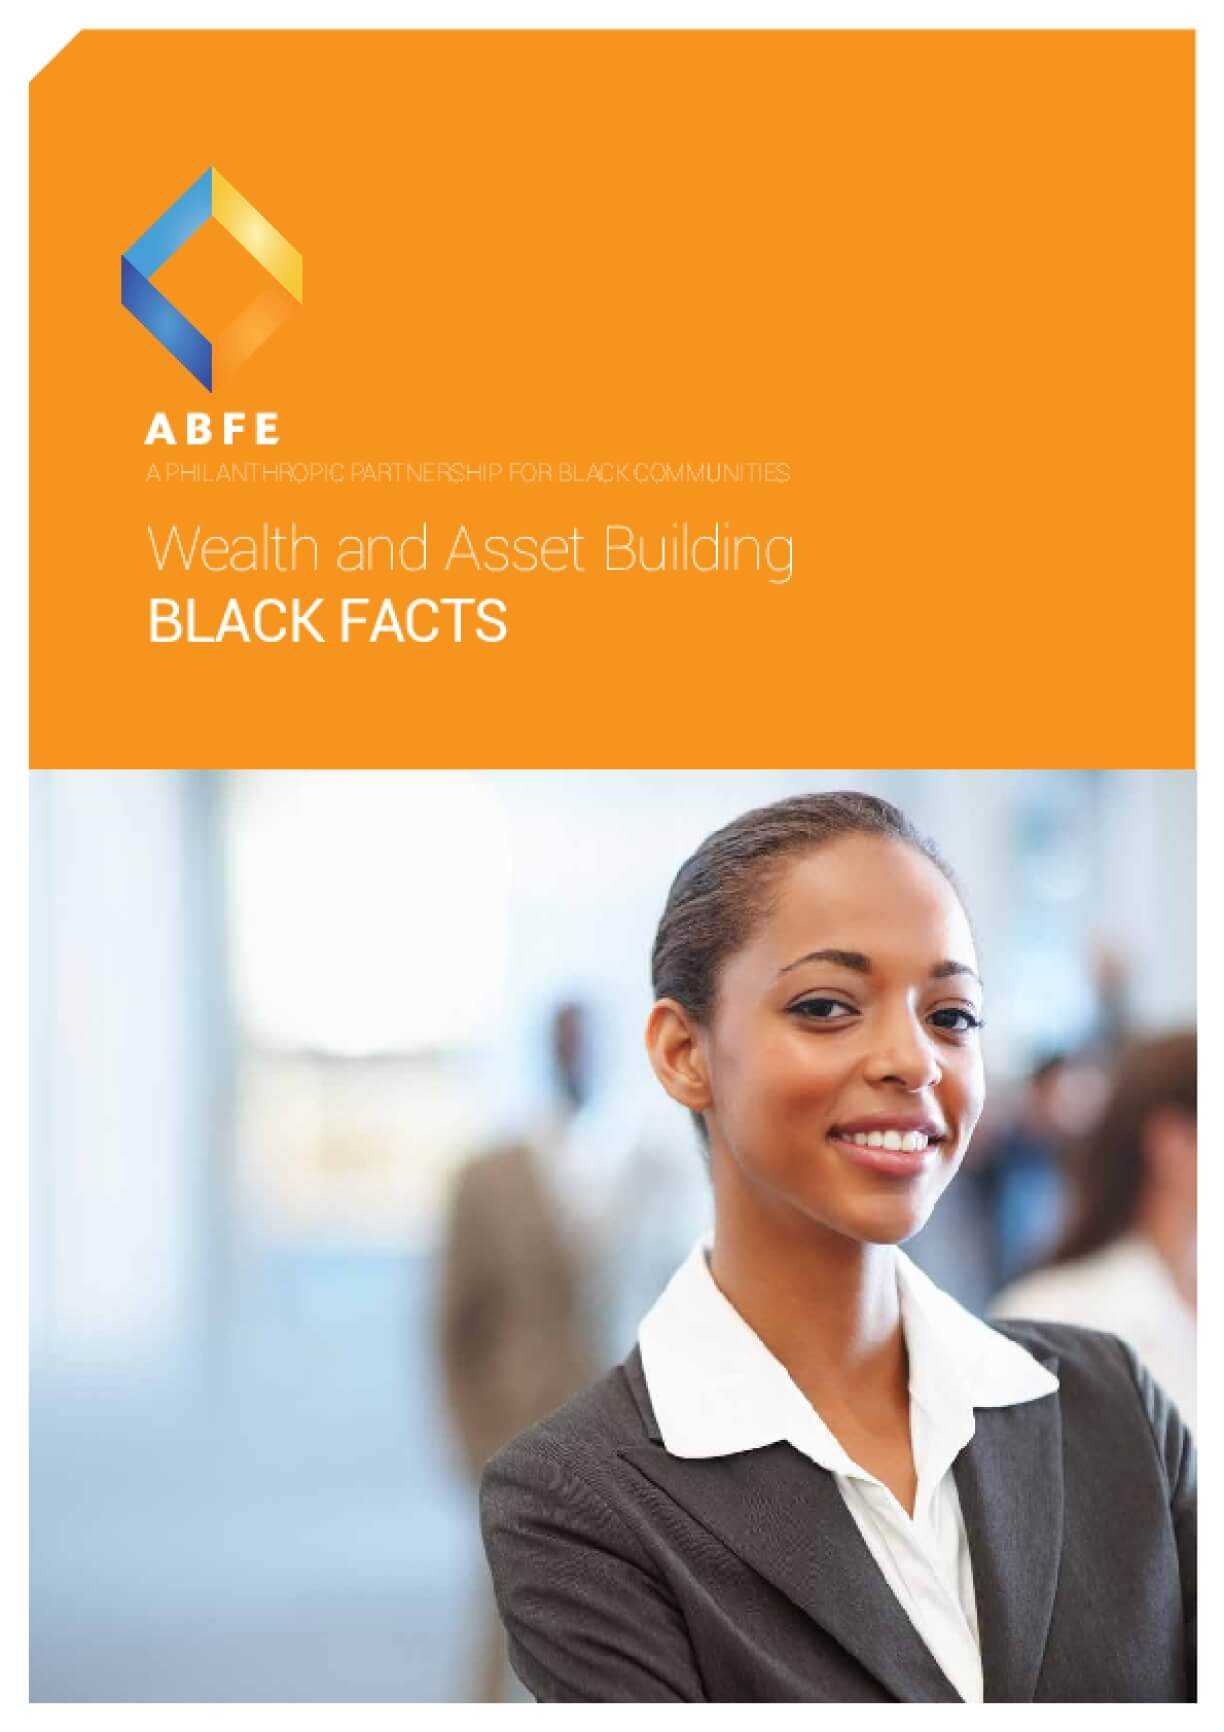 Wealth and Asset Building: Black Facts